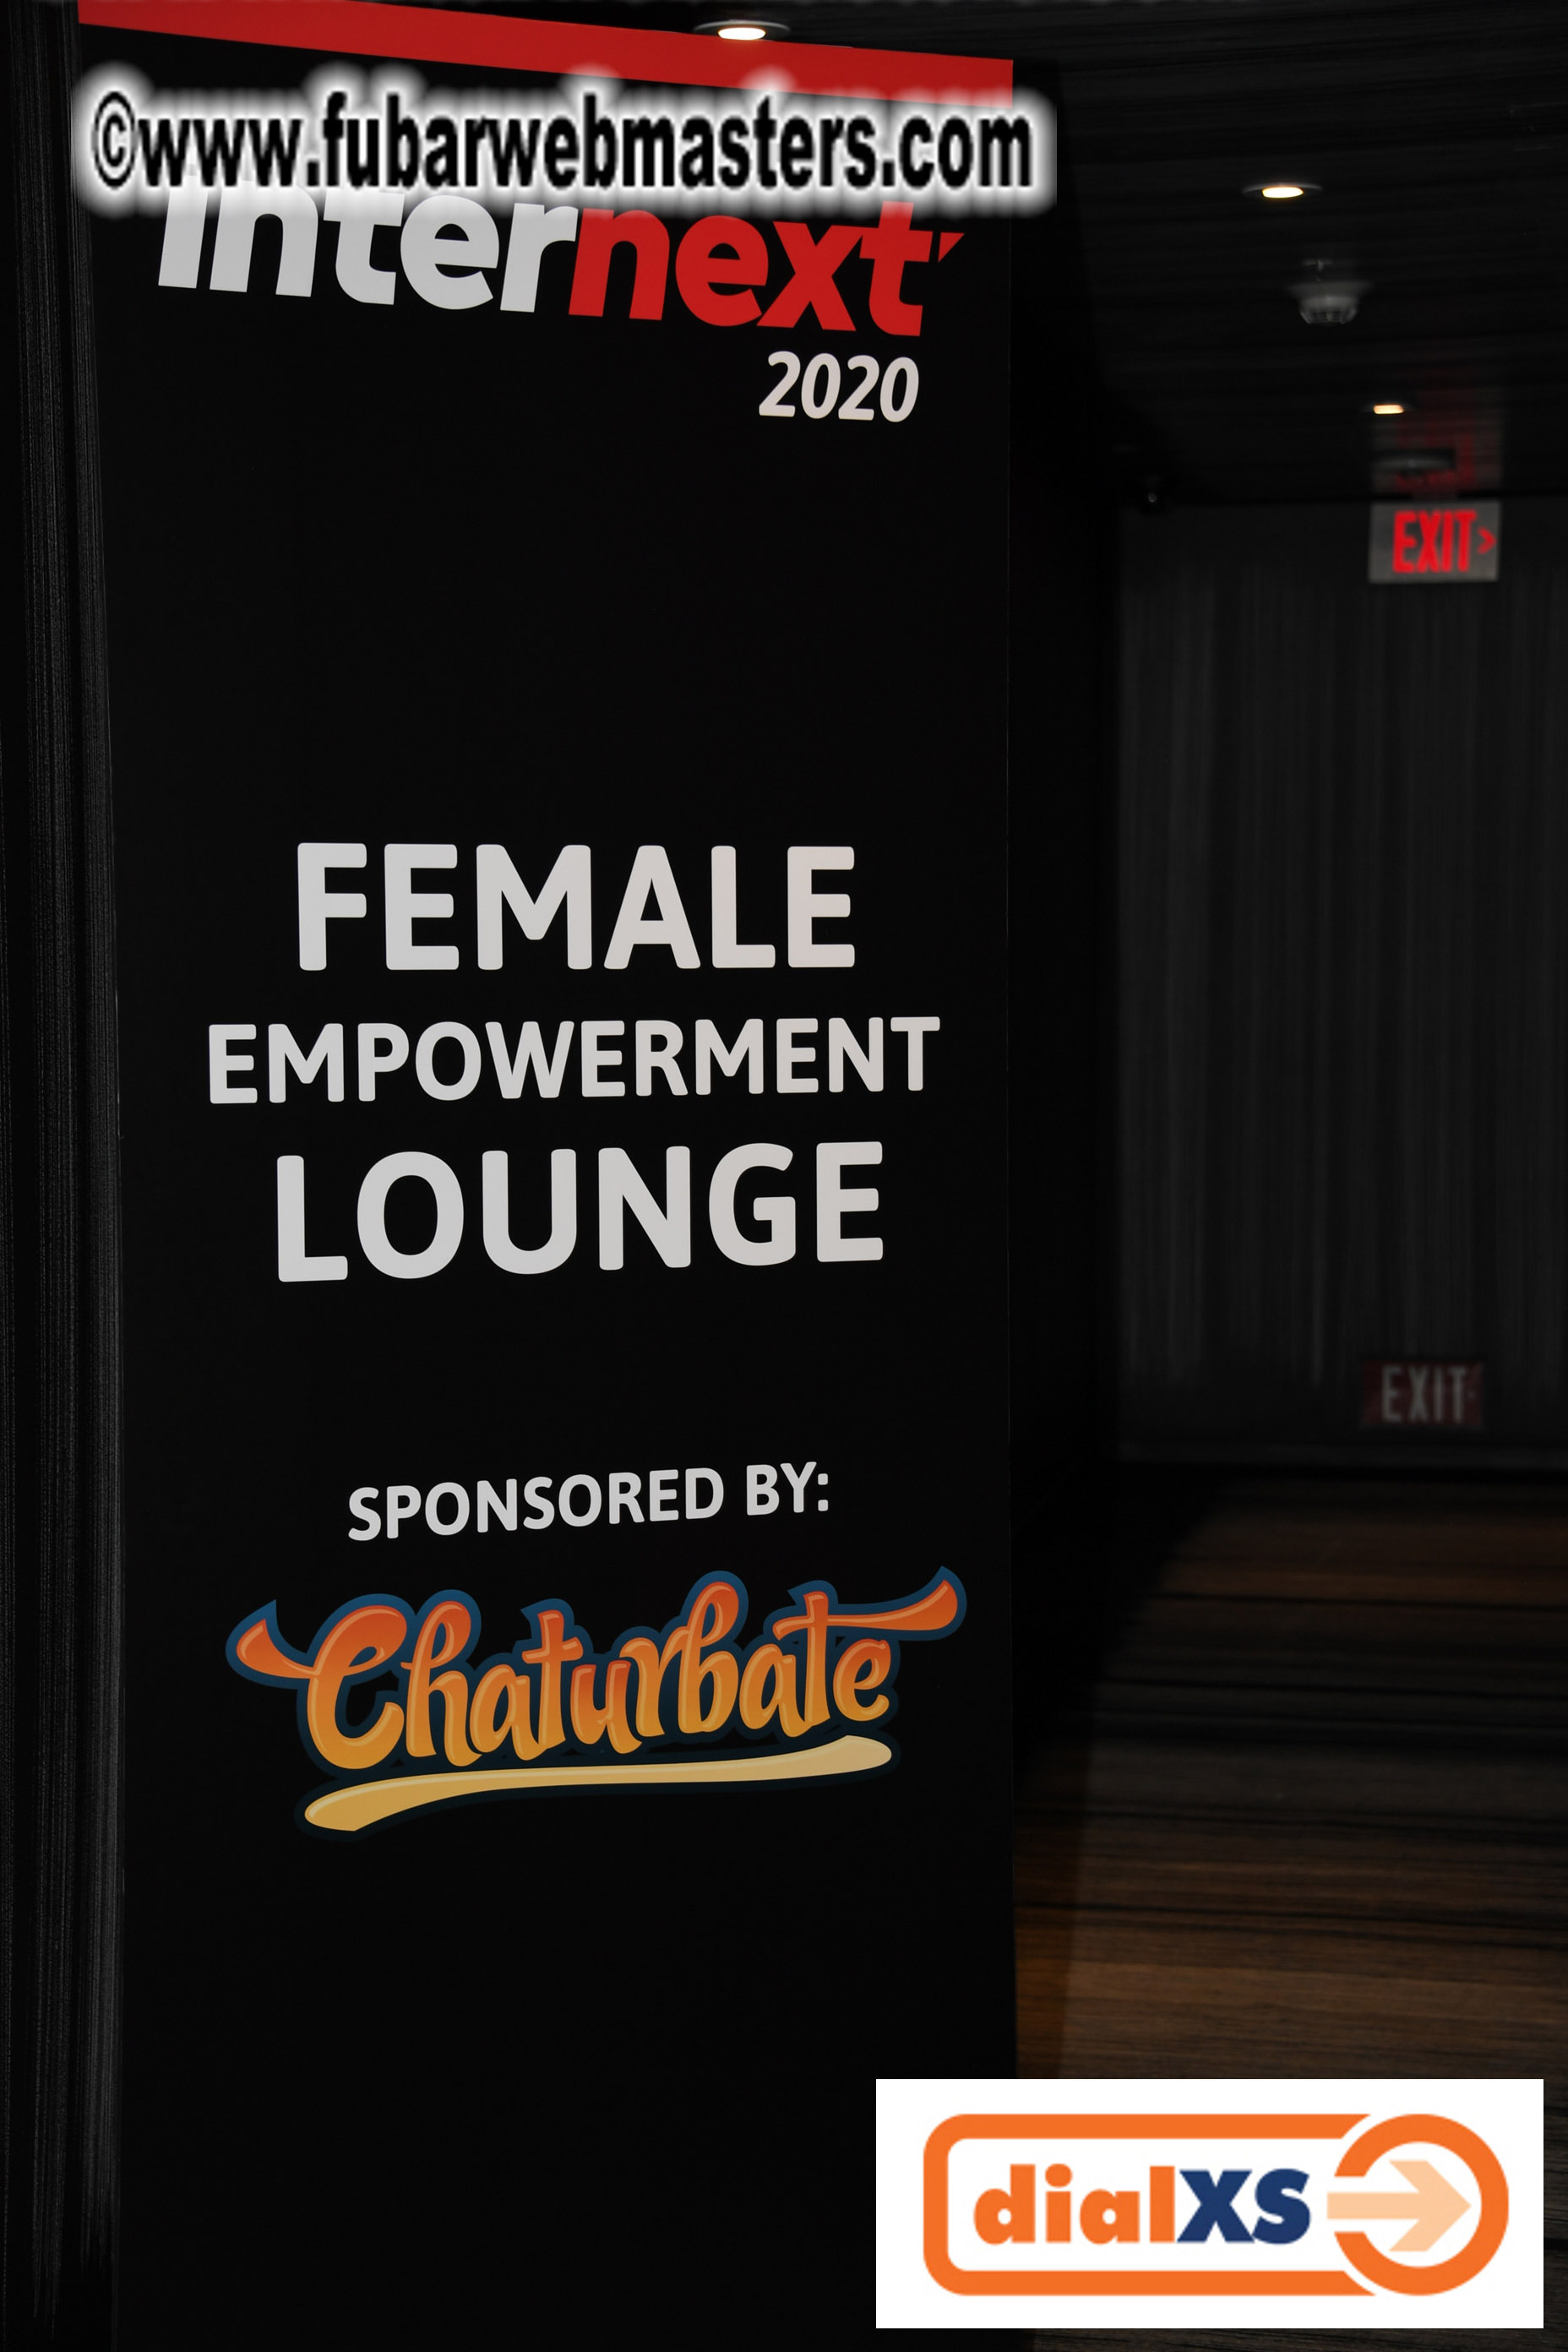 Female Empowerment Lounge